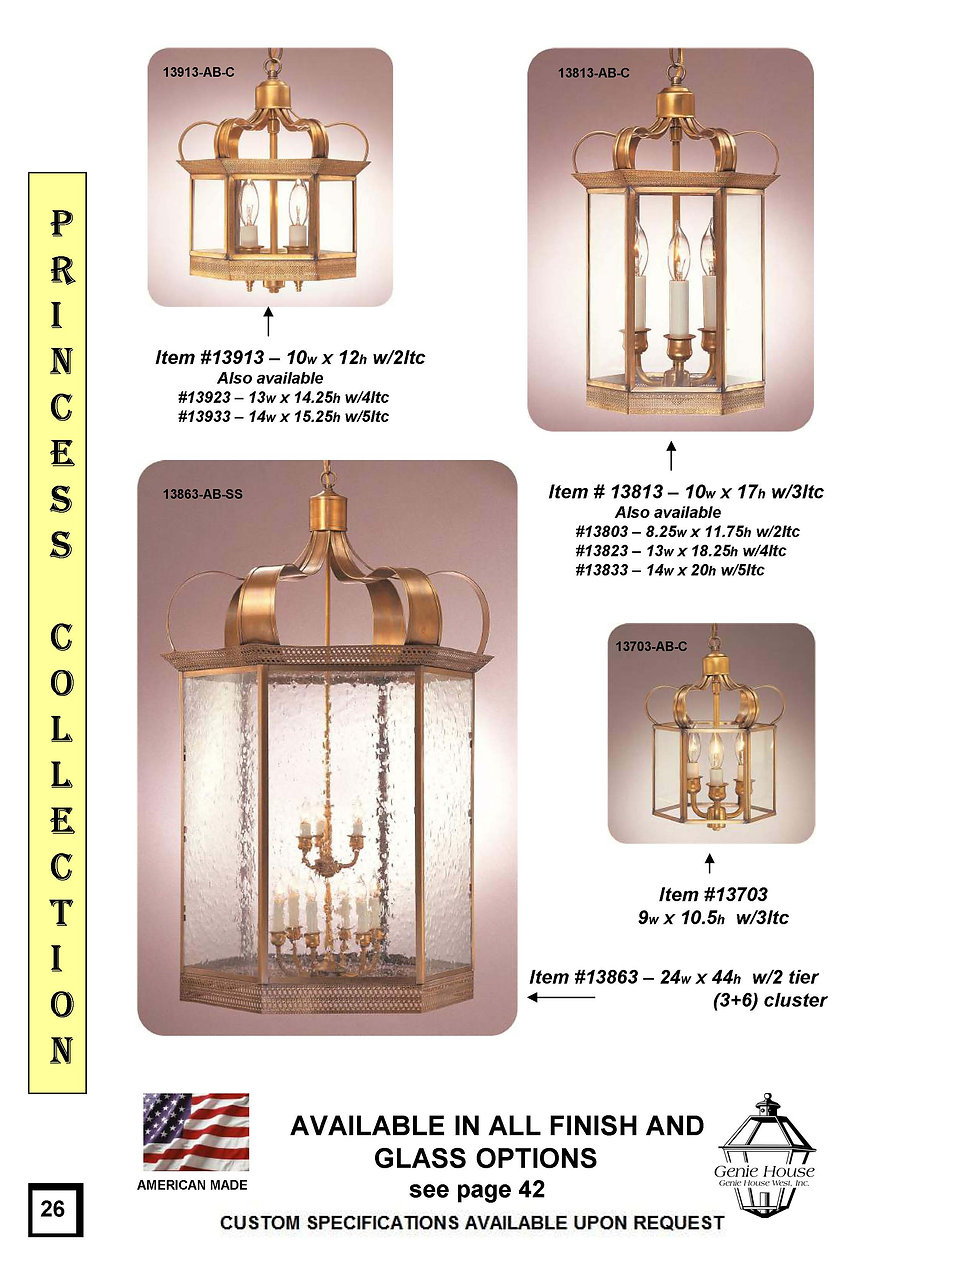 2015 EAST CATALOG NEW_Page_28.jpg